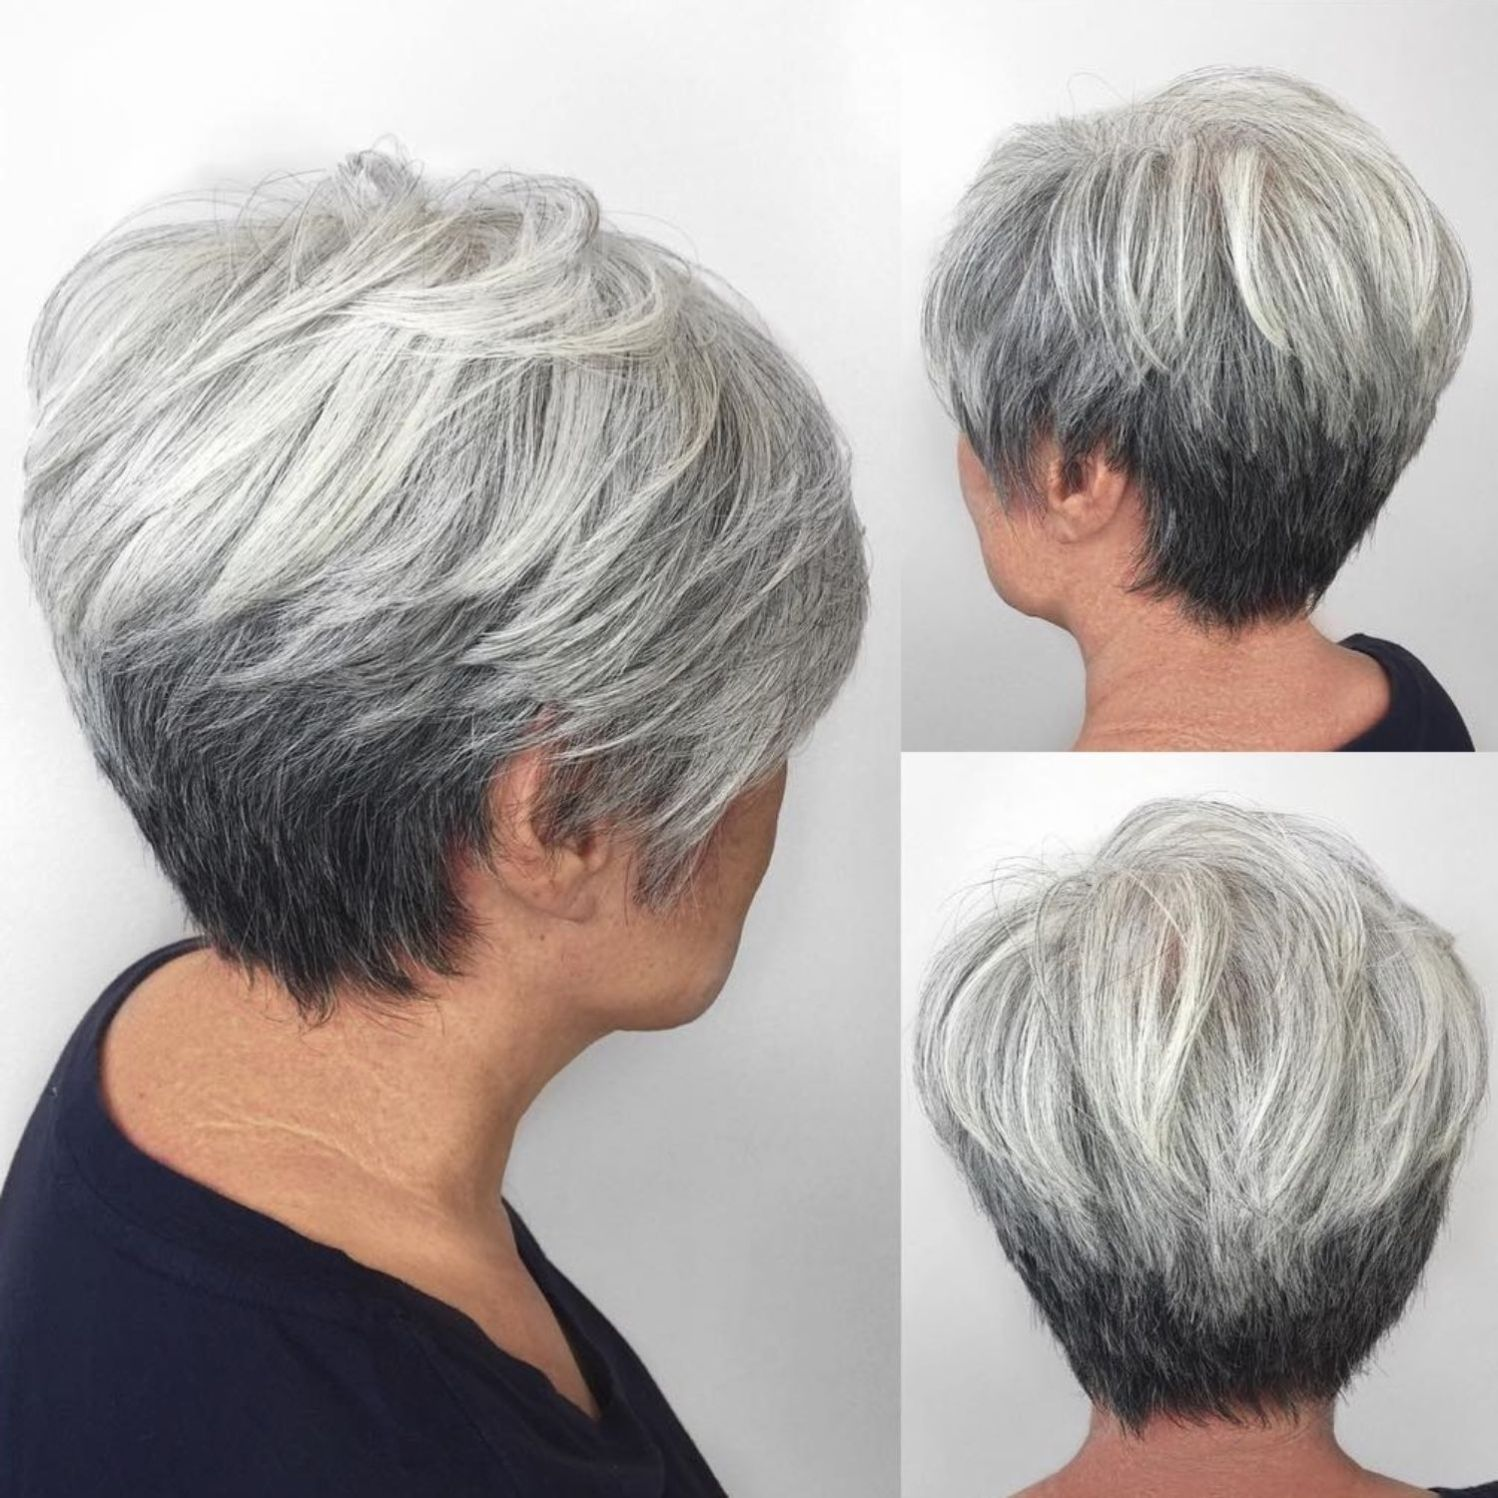 80 Best Modern Hairstyles And Haircuts For Women Over 50 In 2020 Modern Hairstyles Cool Hairstyles Haircut For Older Women